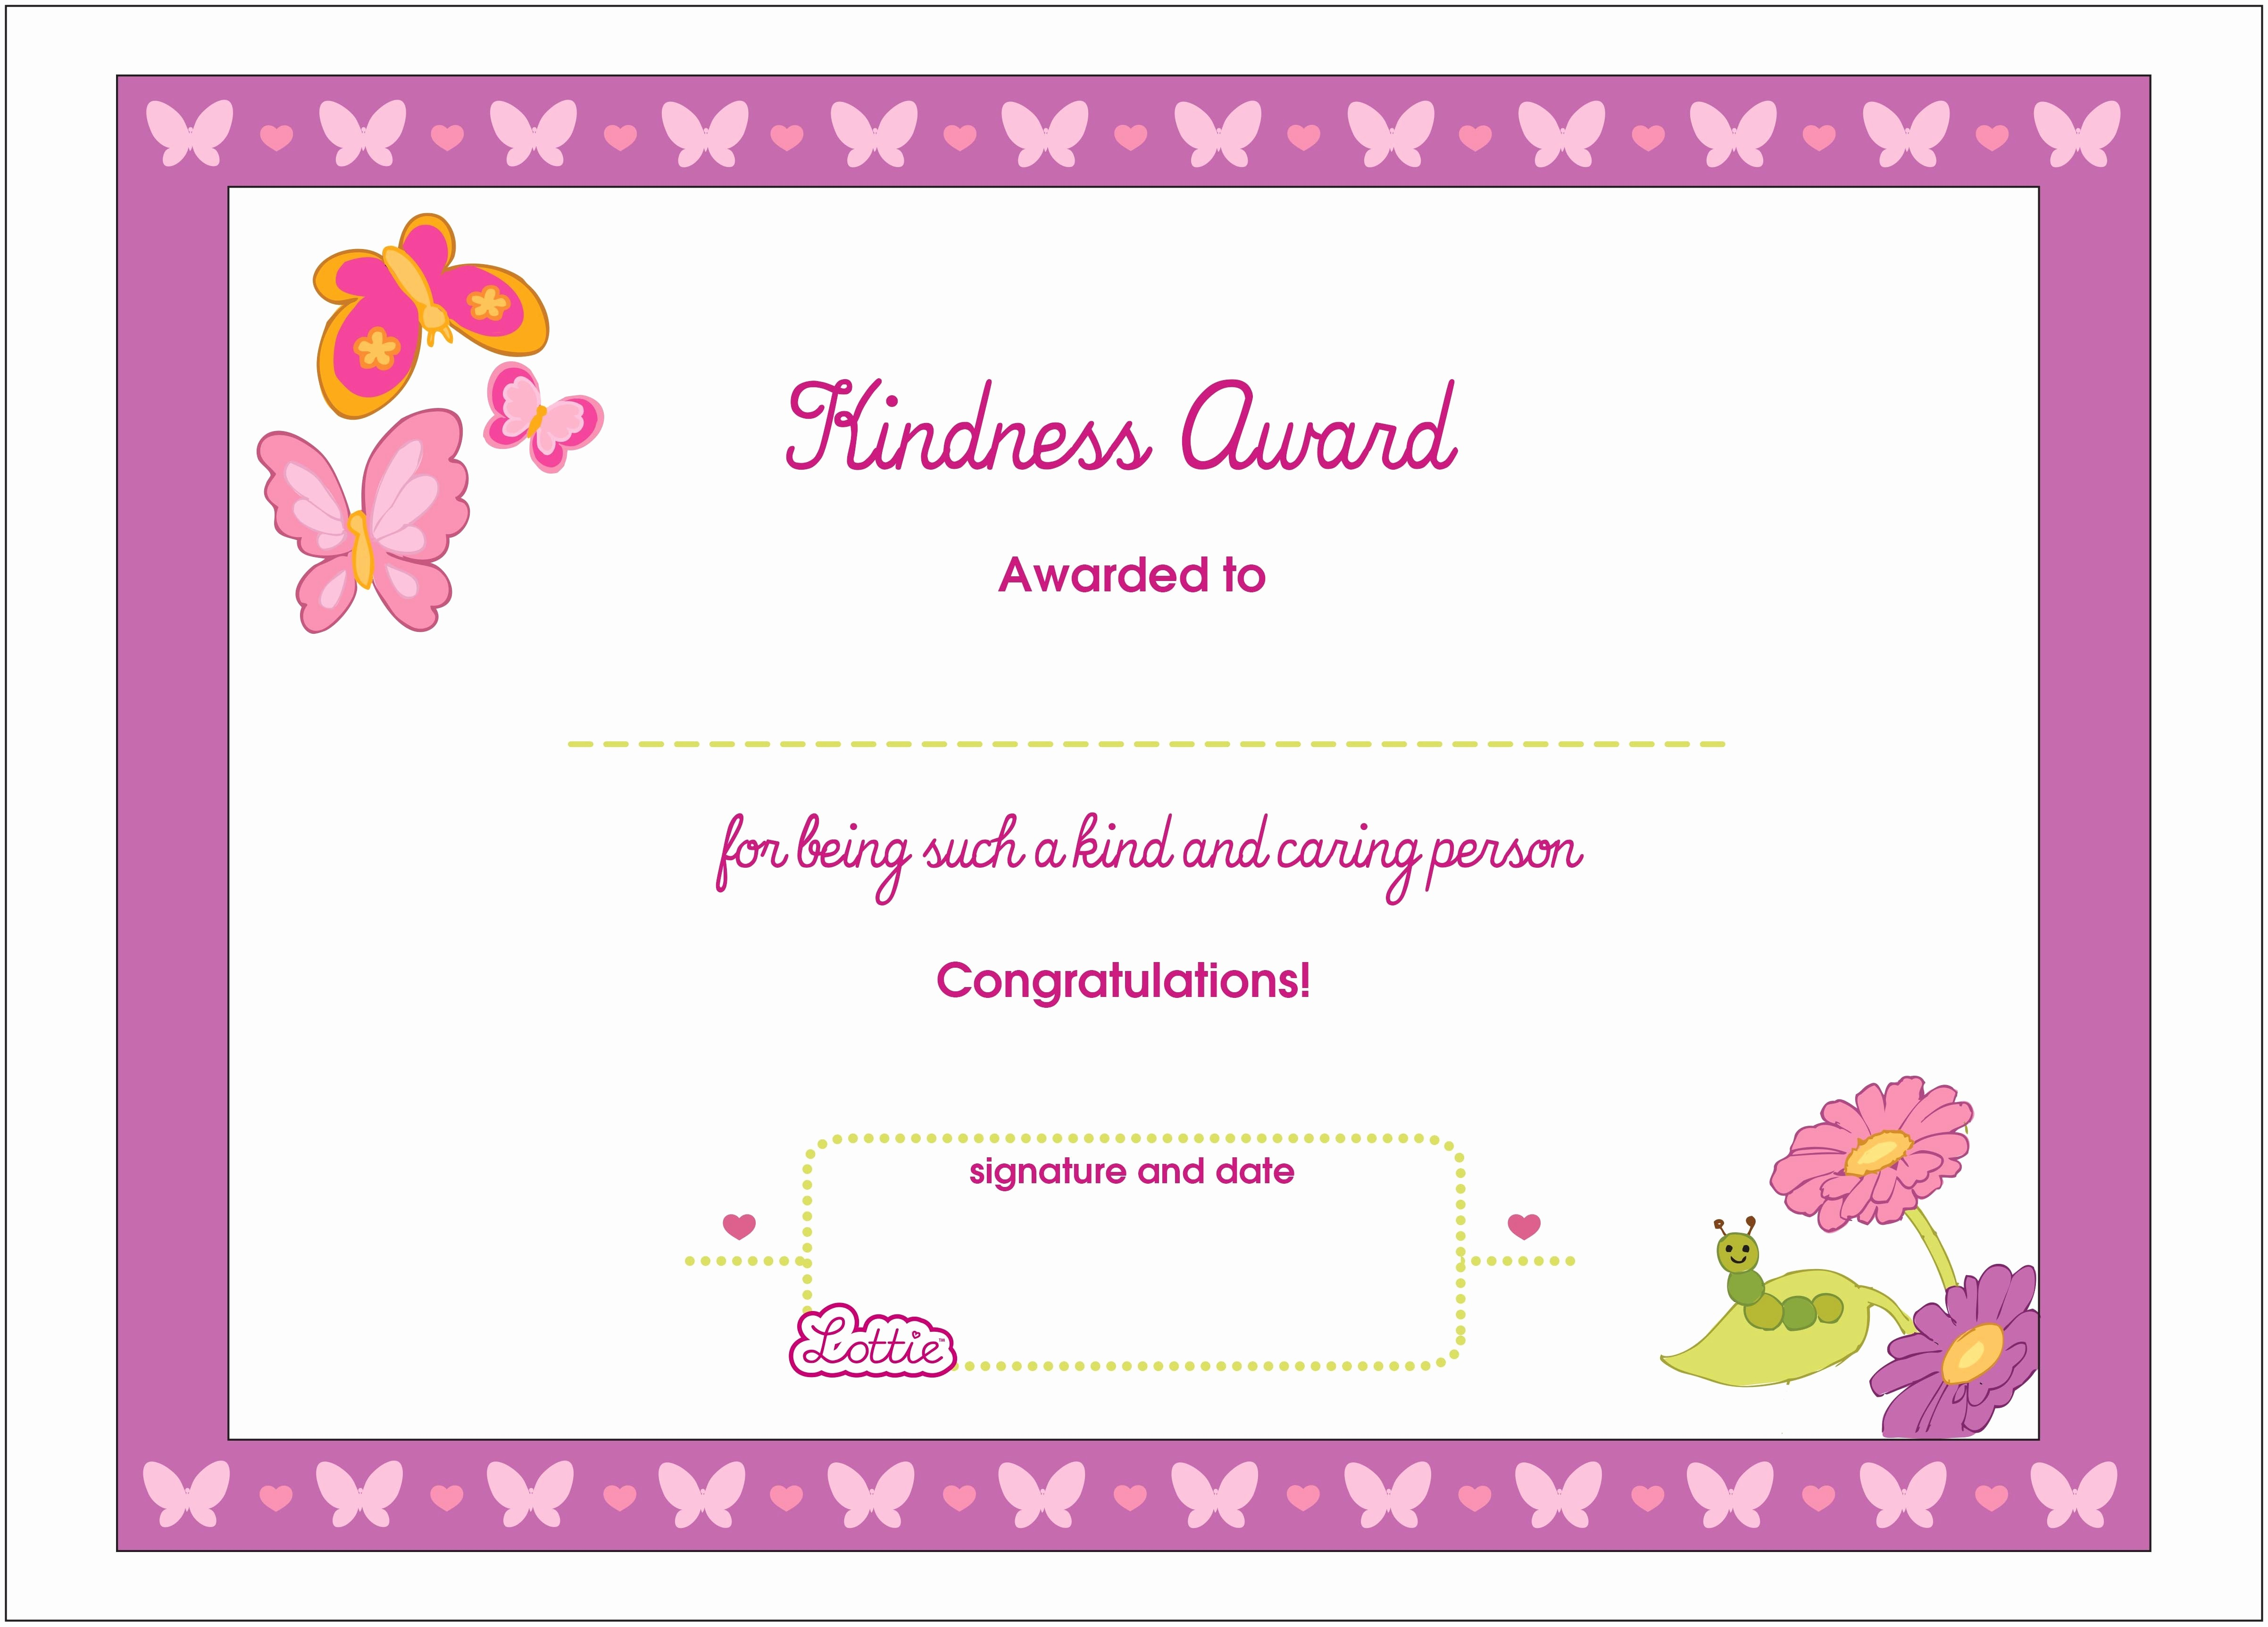 Awards and Certificates for Students New Kindness Printable Award Certificate – Lottie Dolls